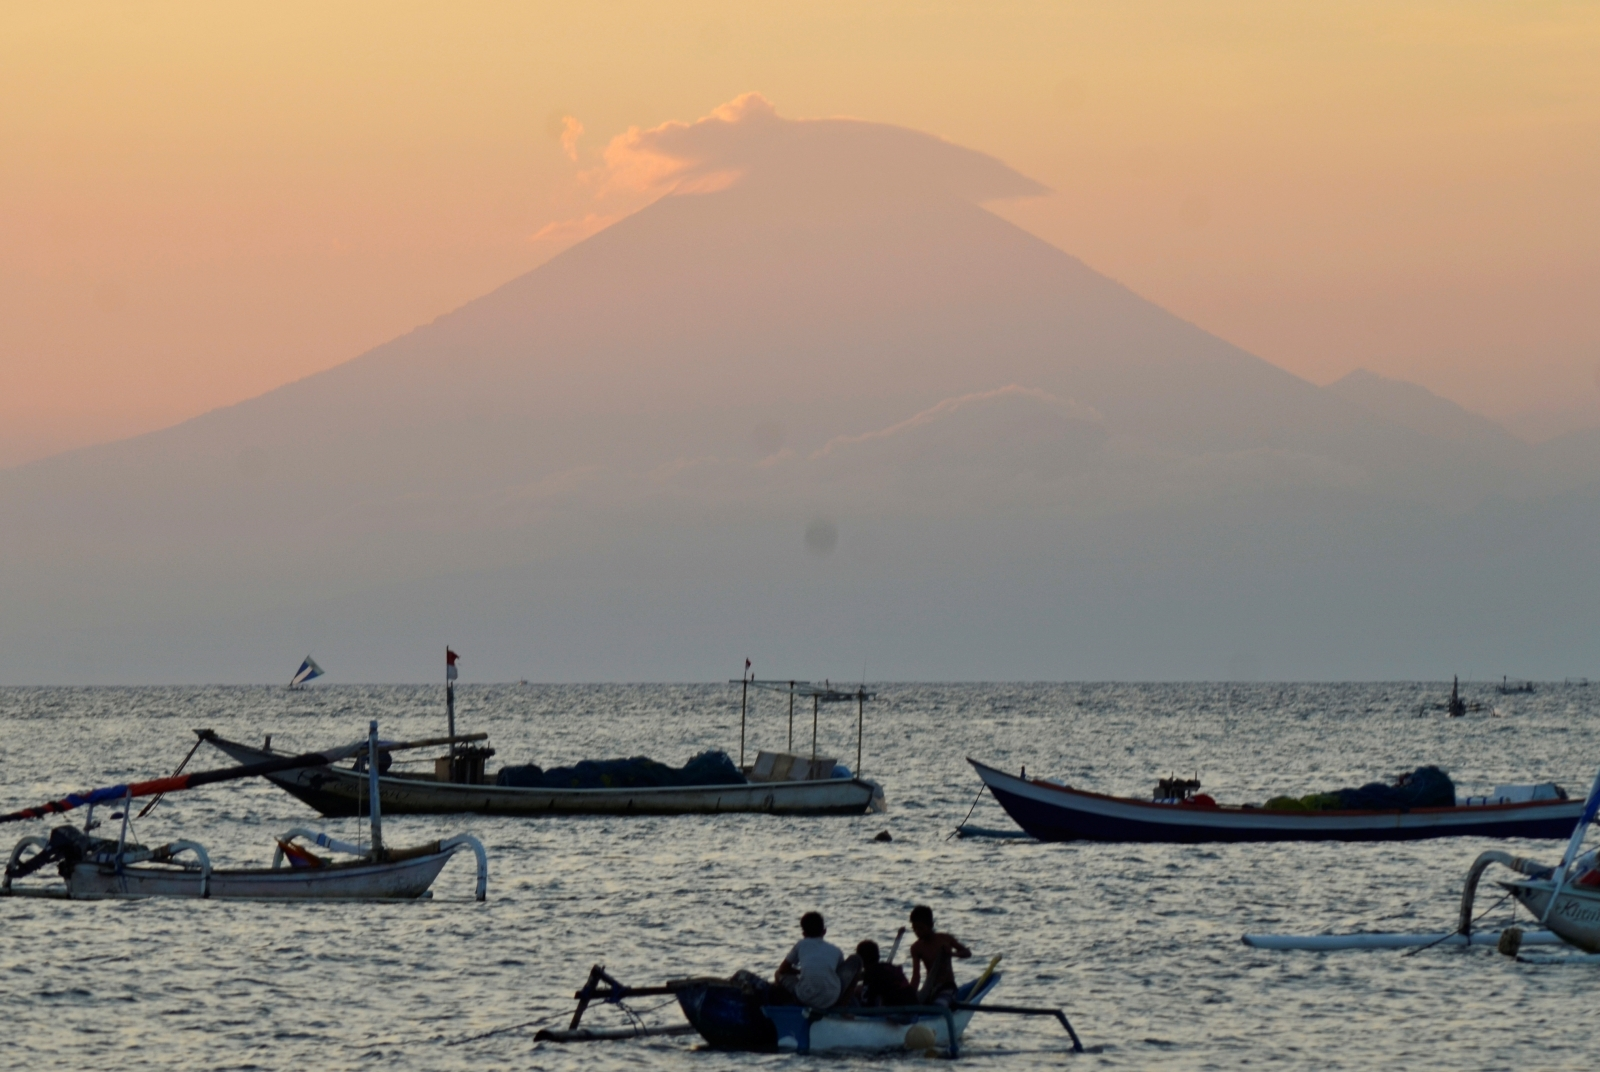 Travel warning issued for Bali as volcano threatens to erupt